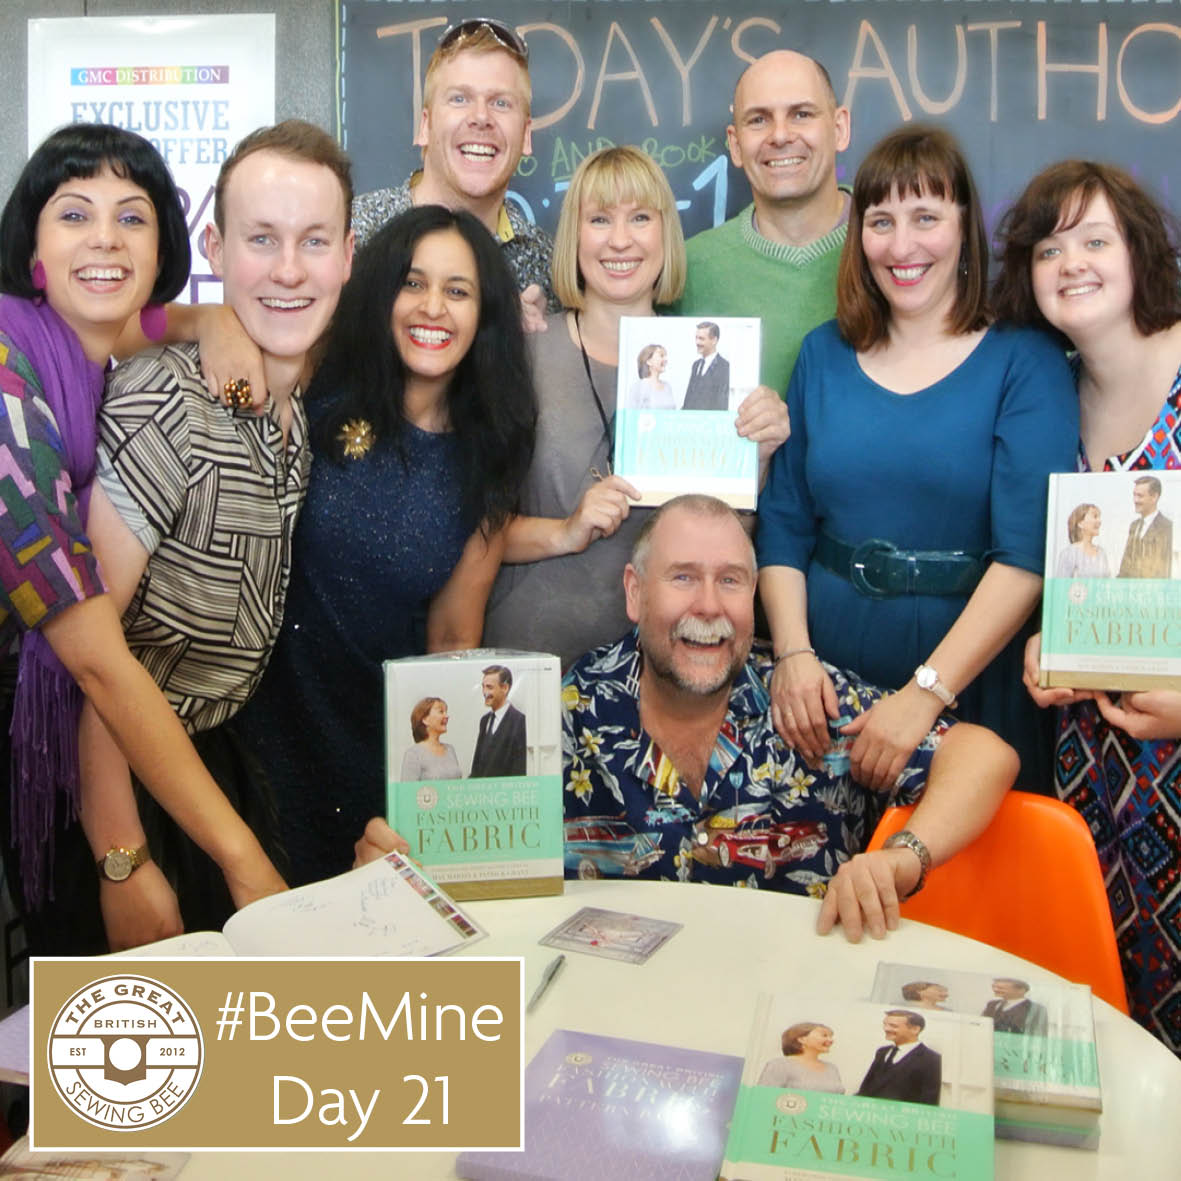 Day 21 #BeeMine- My 30 day blog challenge- Fashion With Fabric